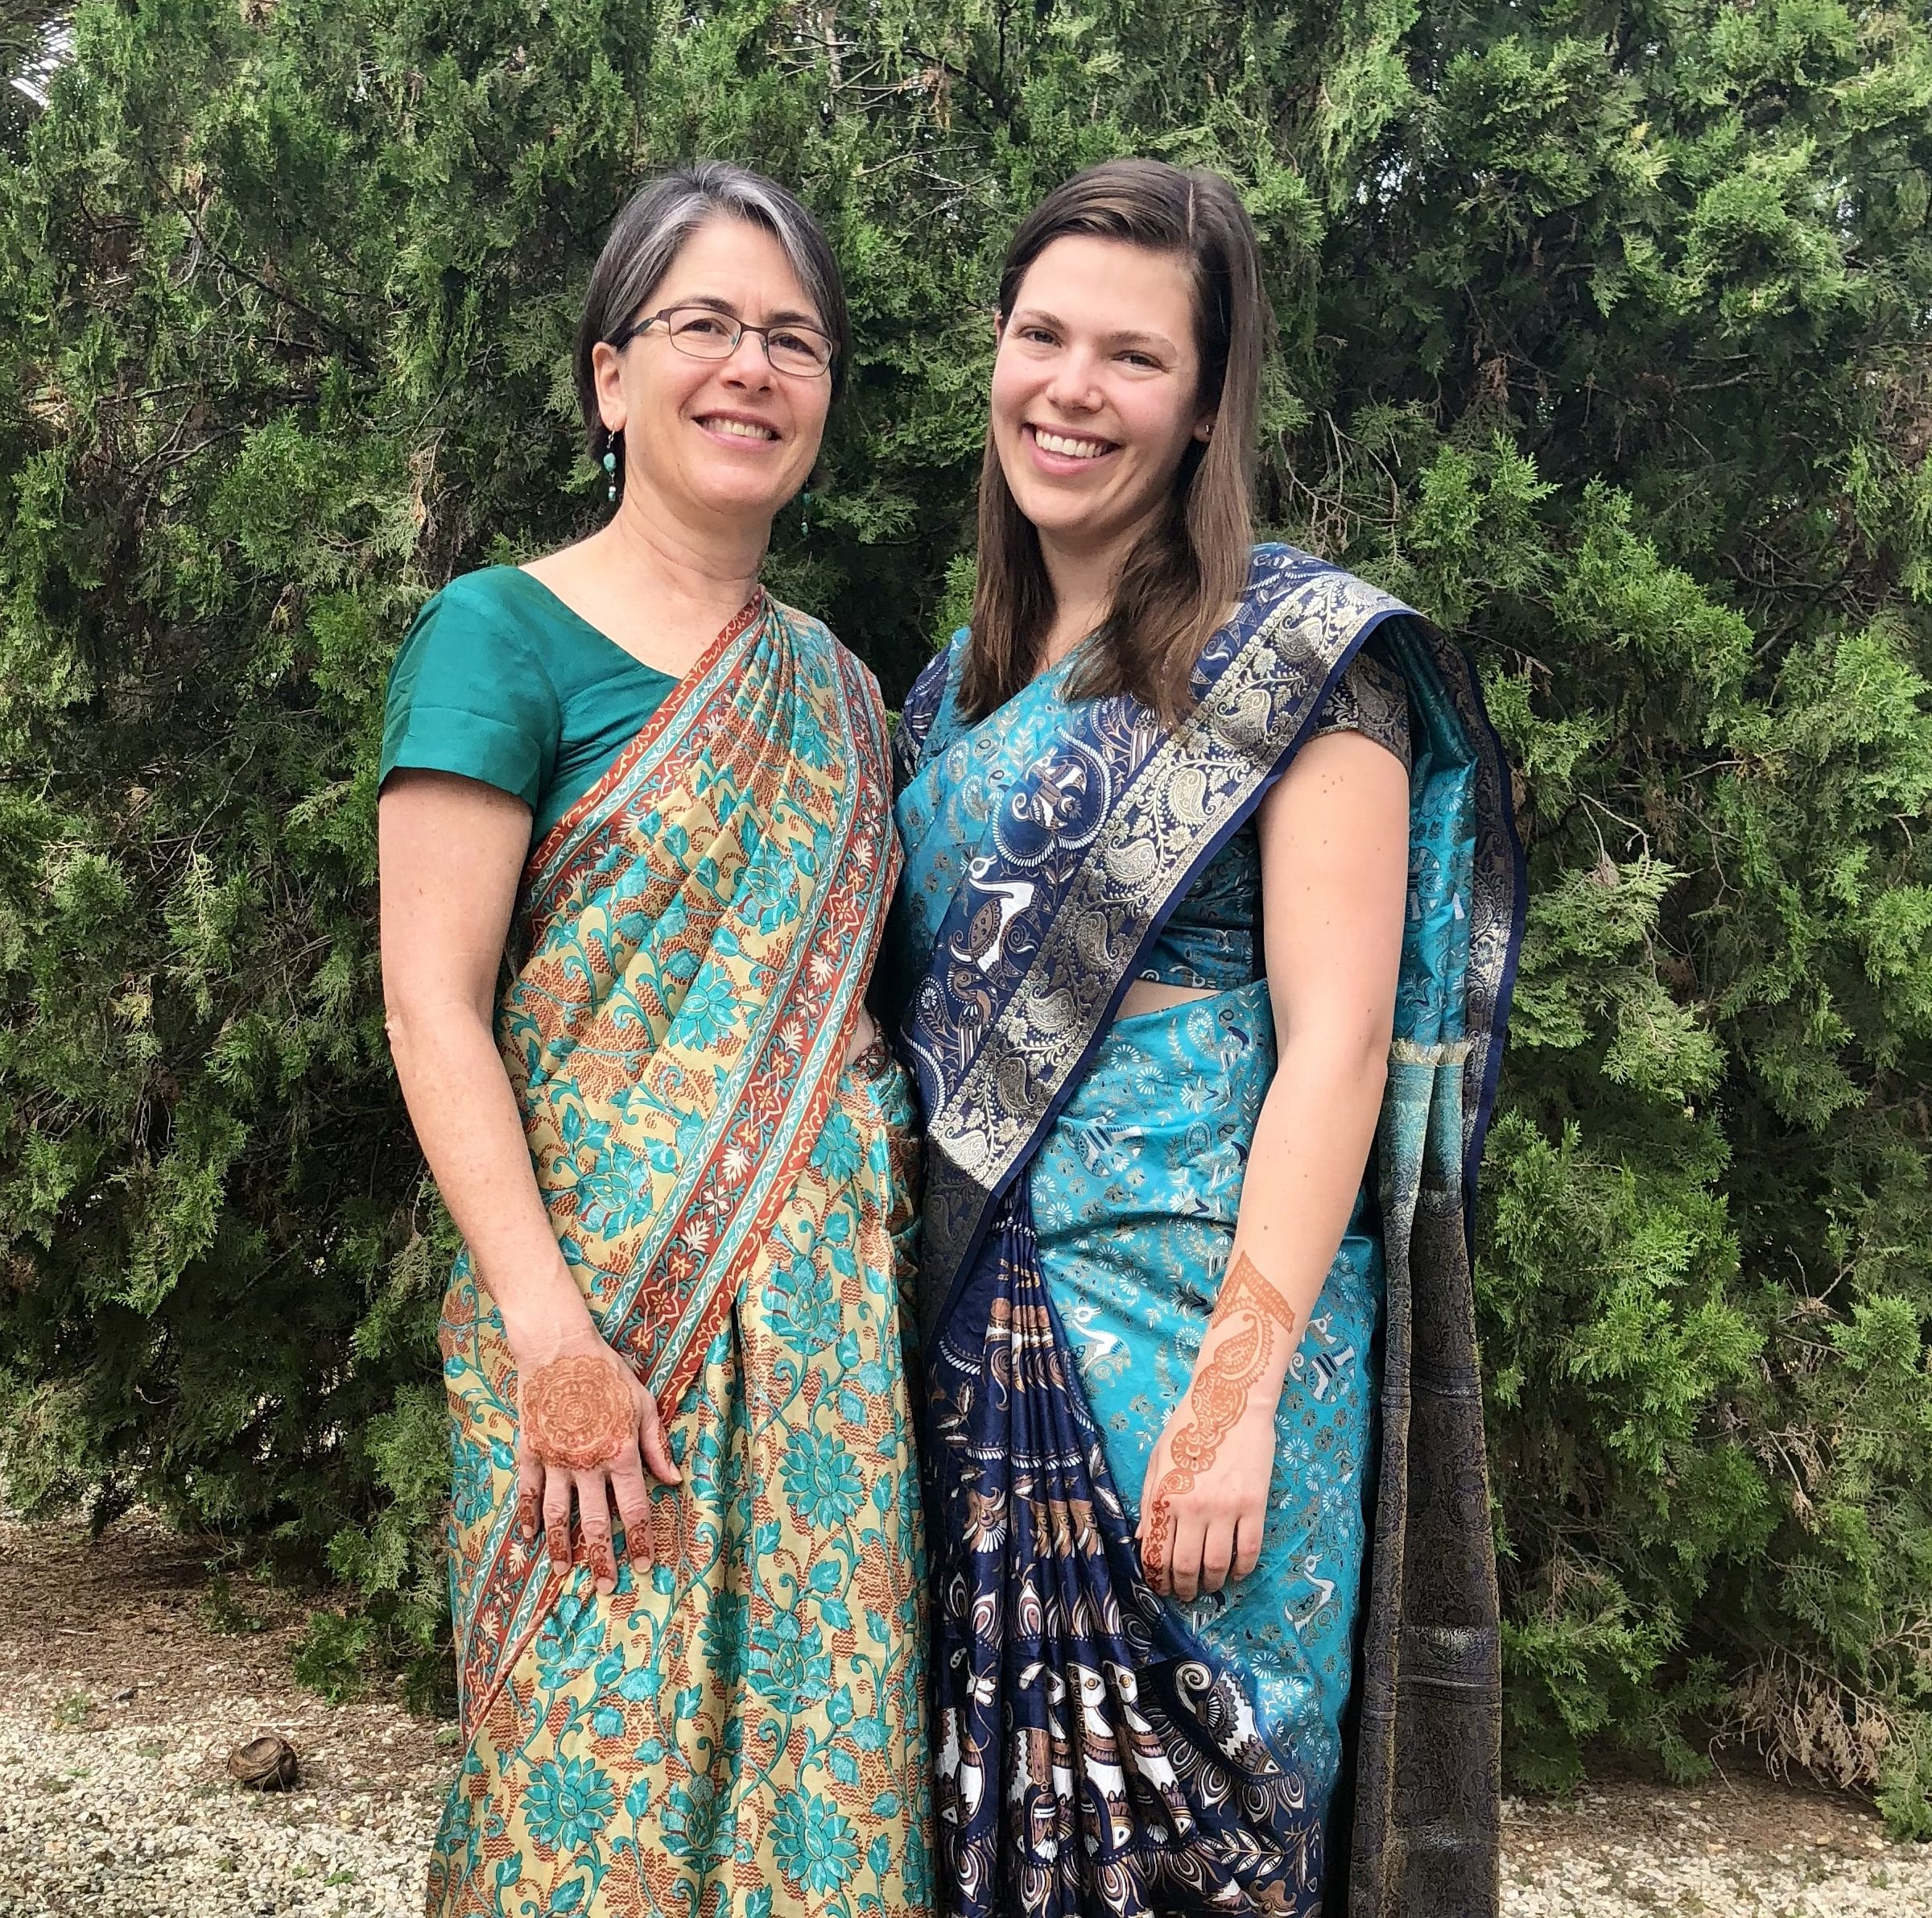 Carrie and Meg in Saris